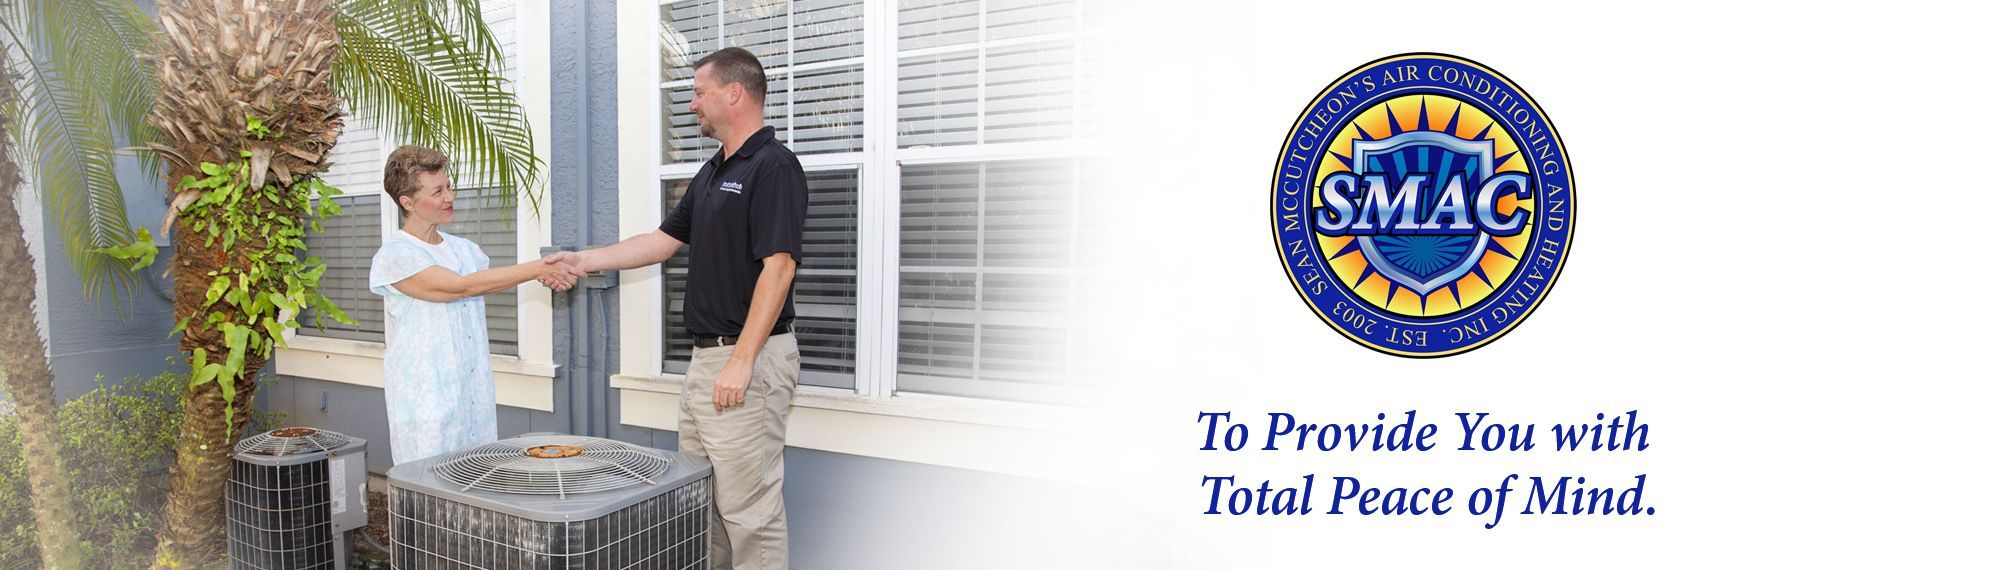 Sean McCutcheon's Air Conditioning and Heating Sarasota total peace of mind